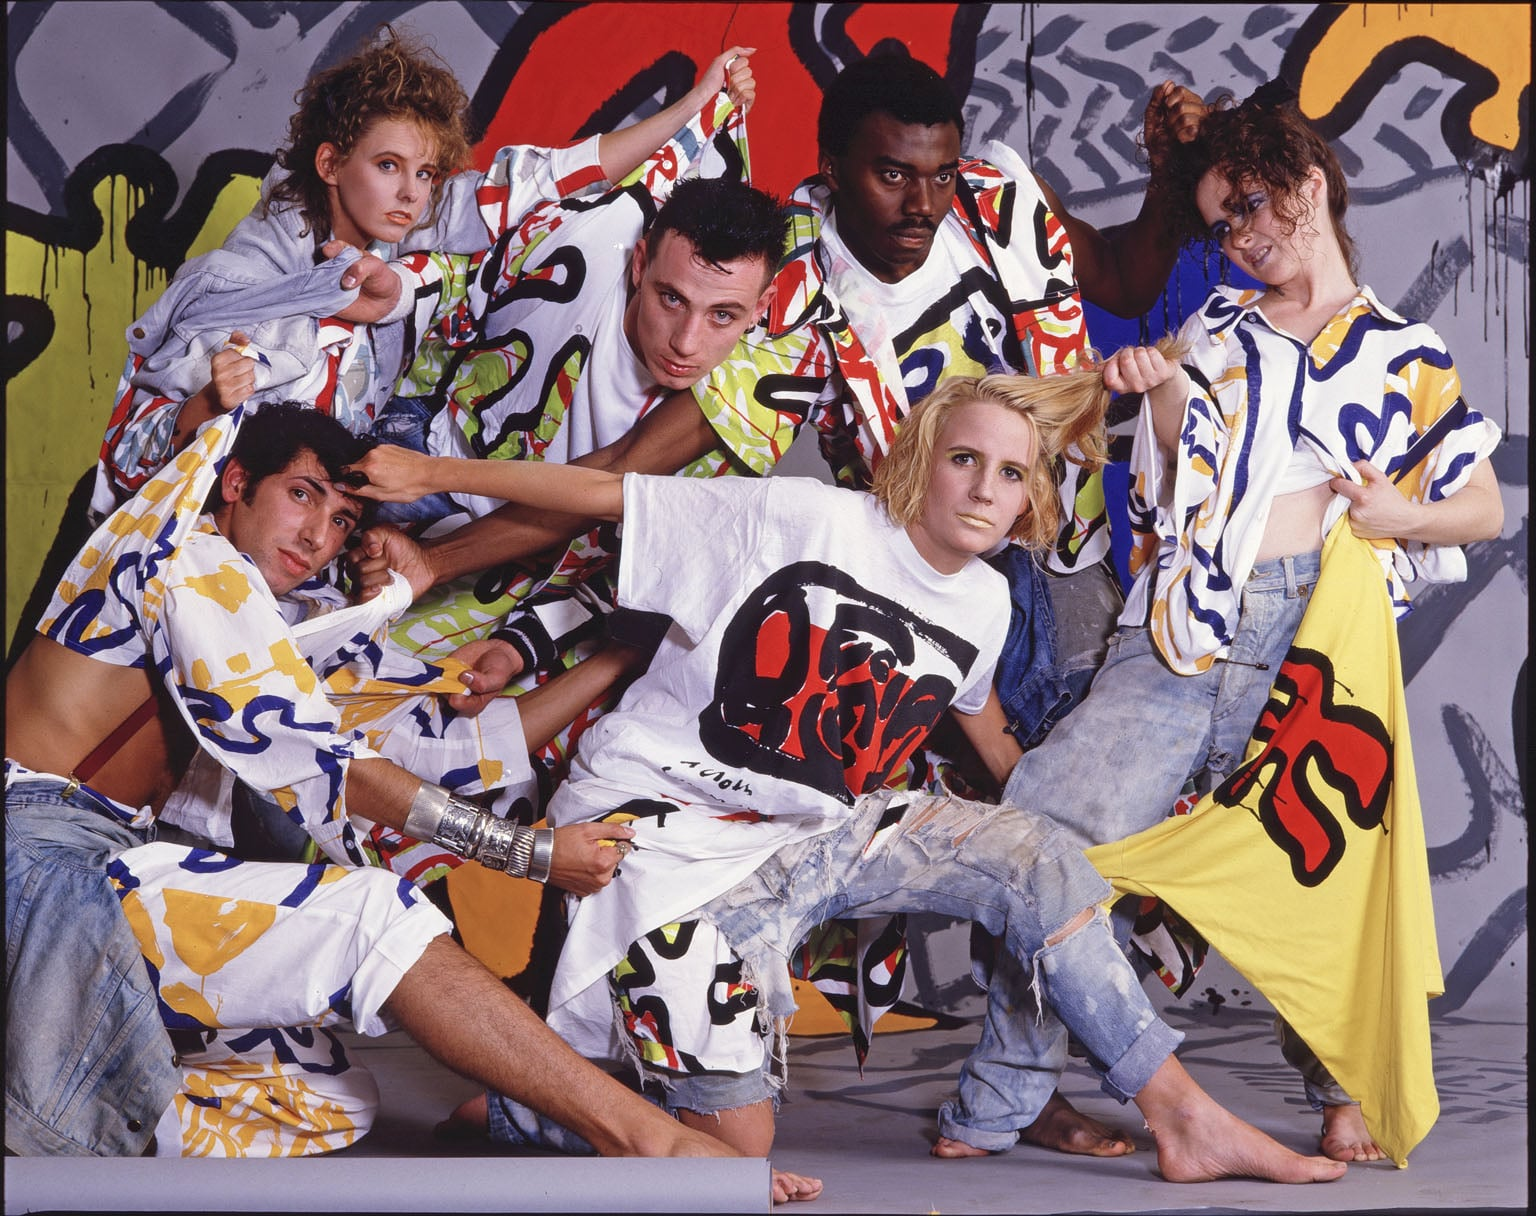 5. Club to Catwalk: London fashion in the 1980s, V - The Cloth, Summer Summit, 1985